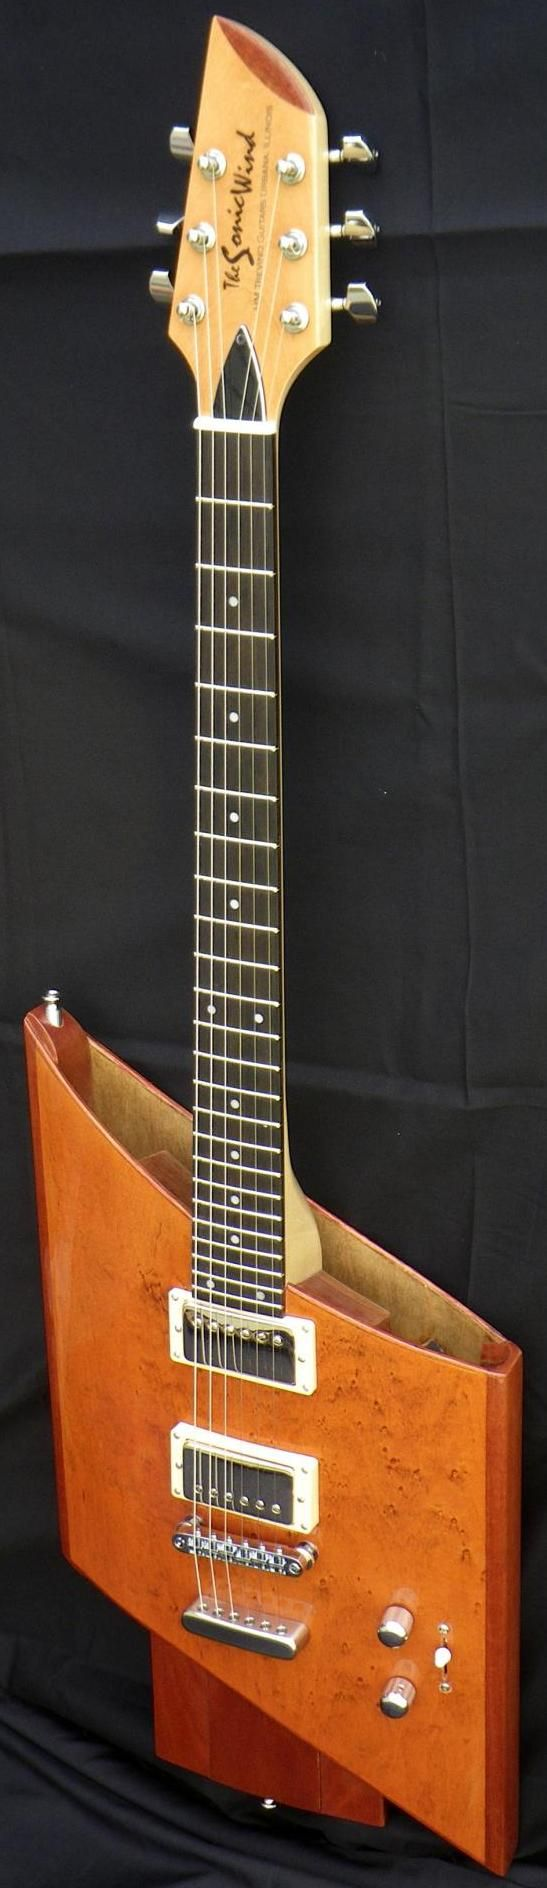 Hector Trevino the Sonic Wind Guitar --- https://www.pinterest.com/lardyfatboy/